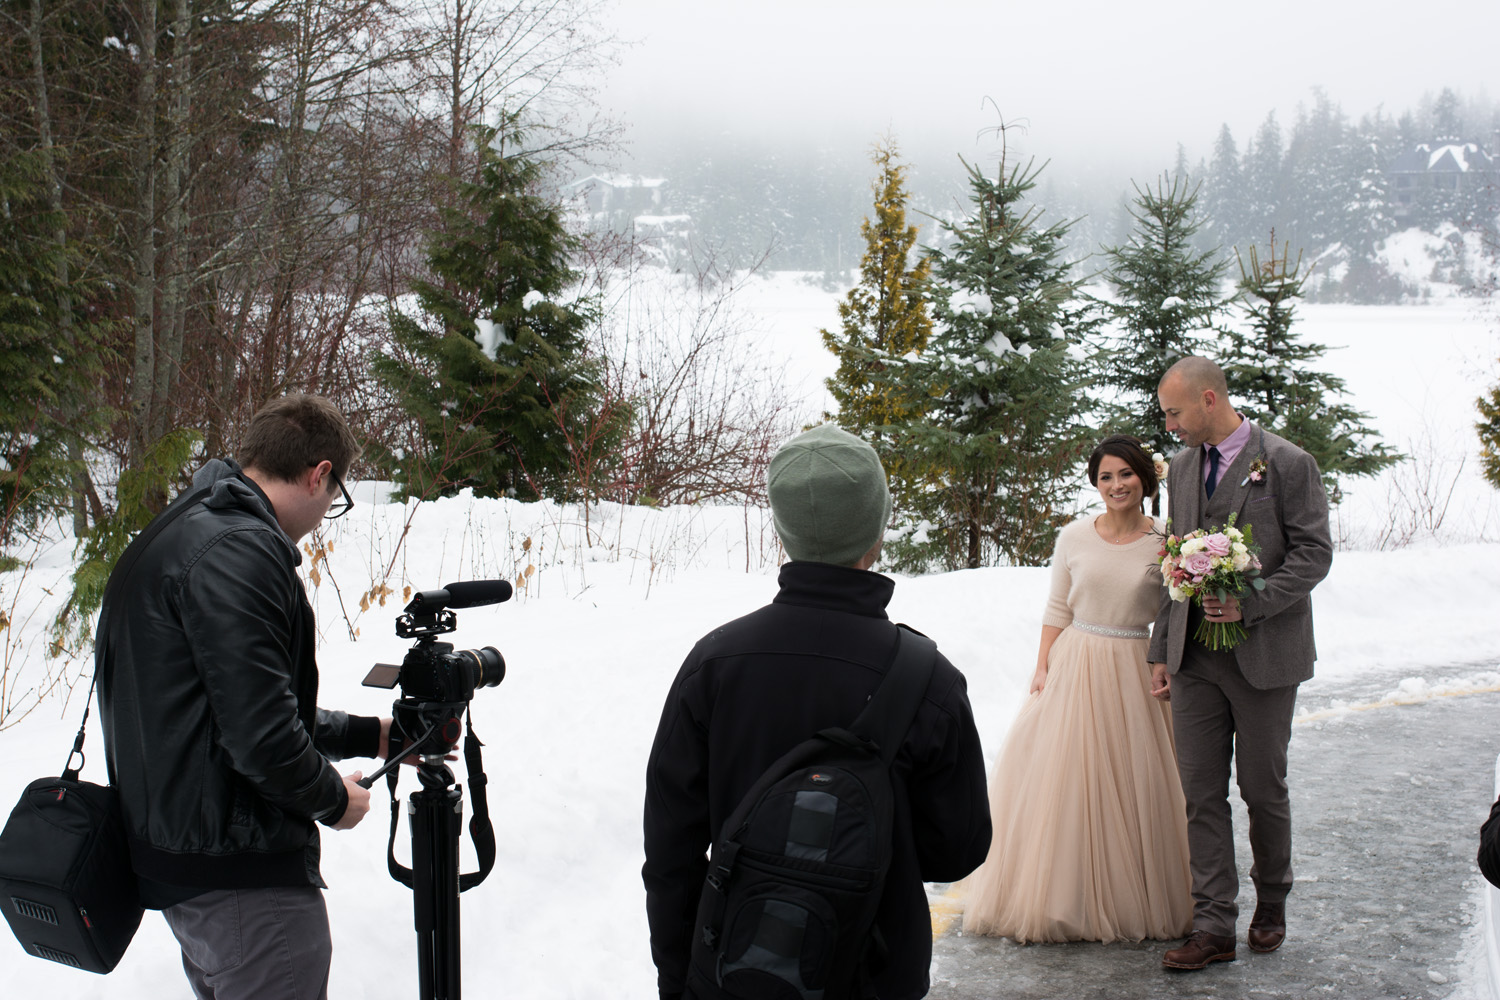 This was our first wedding where we had to shoot in the snow and it was cold! Luckily we came prepared with gloves and hot packs.